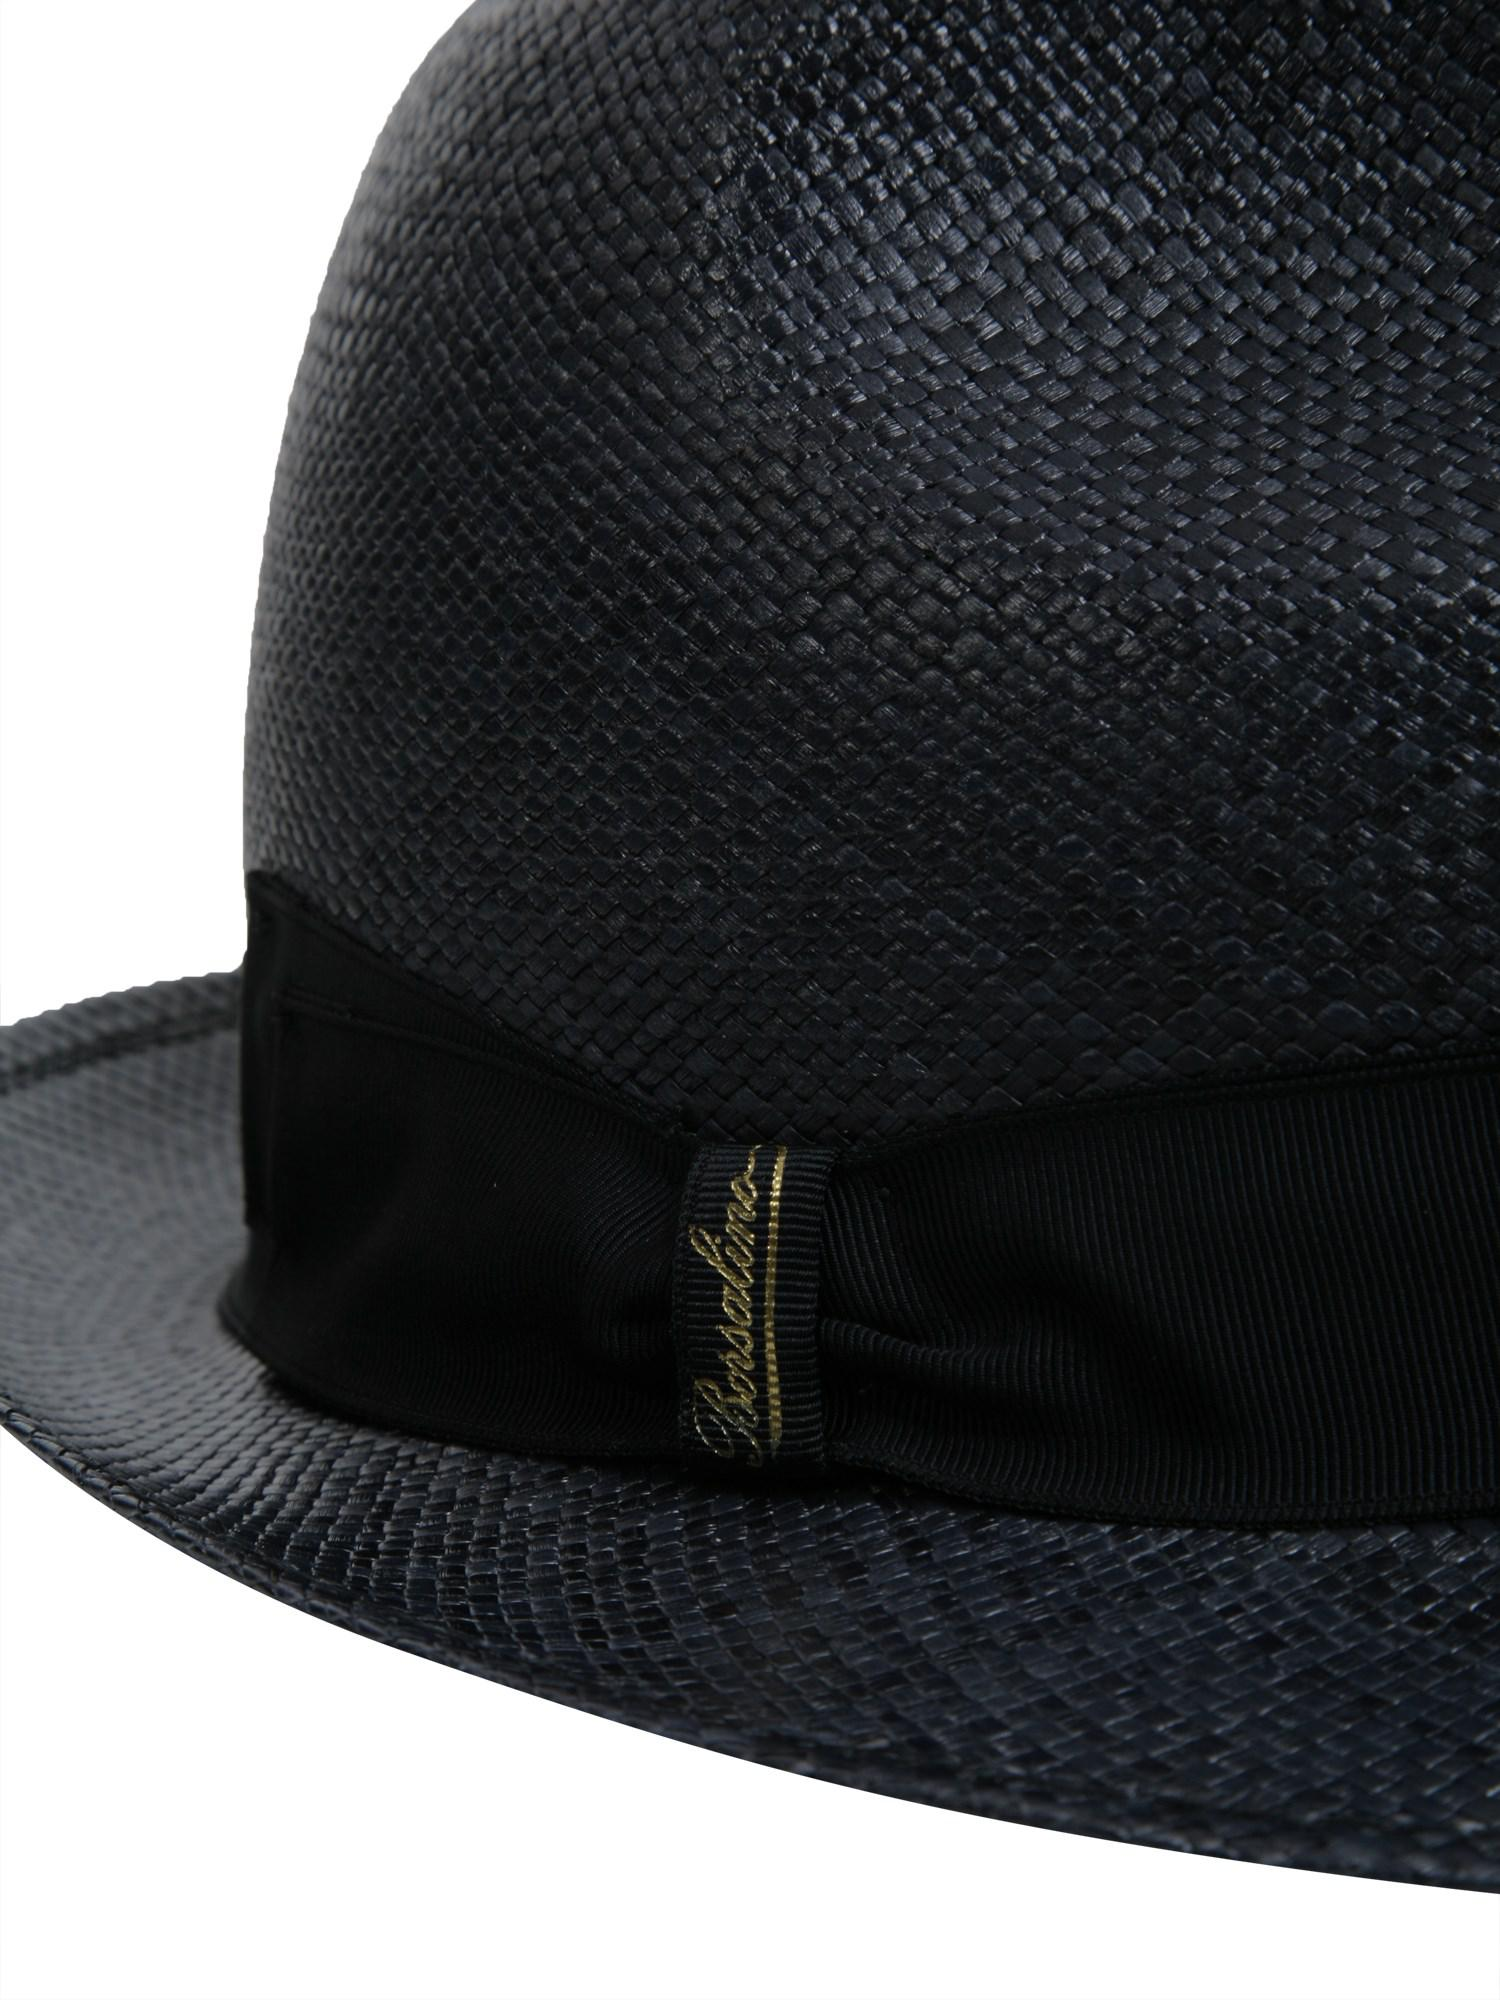 Borsalino - Blue Cappello Panama Quito A Tesa Piccola In Canapa for Men -  Lyst. View fullscreen 2c0f1d9e3c09